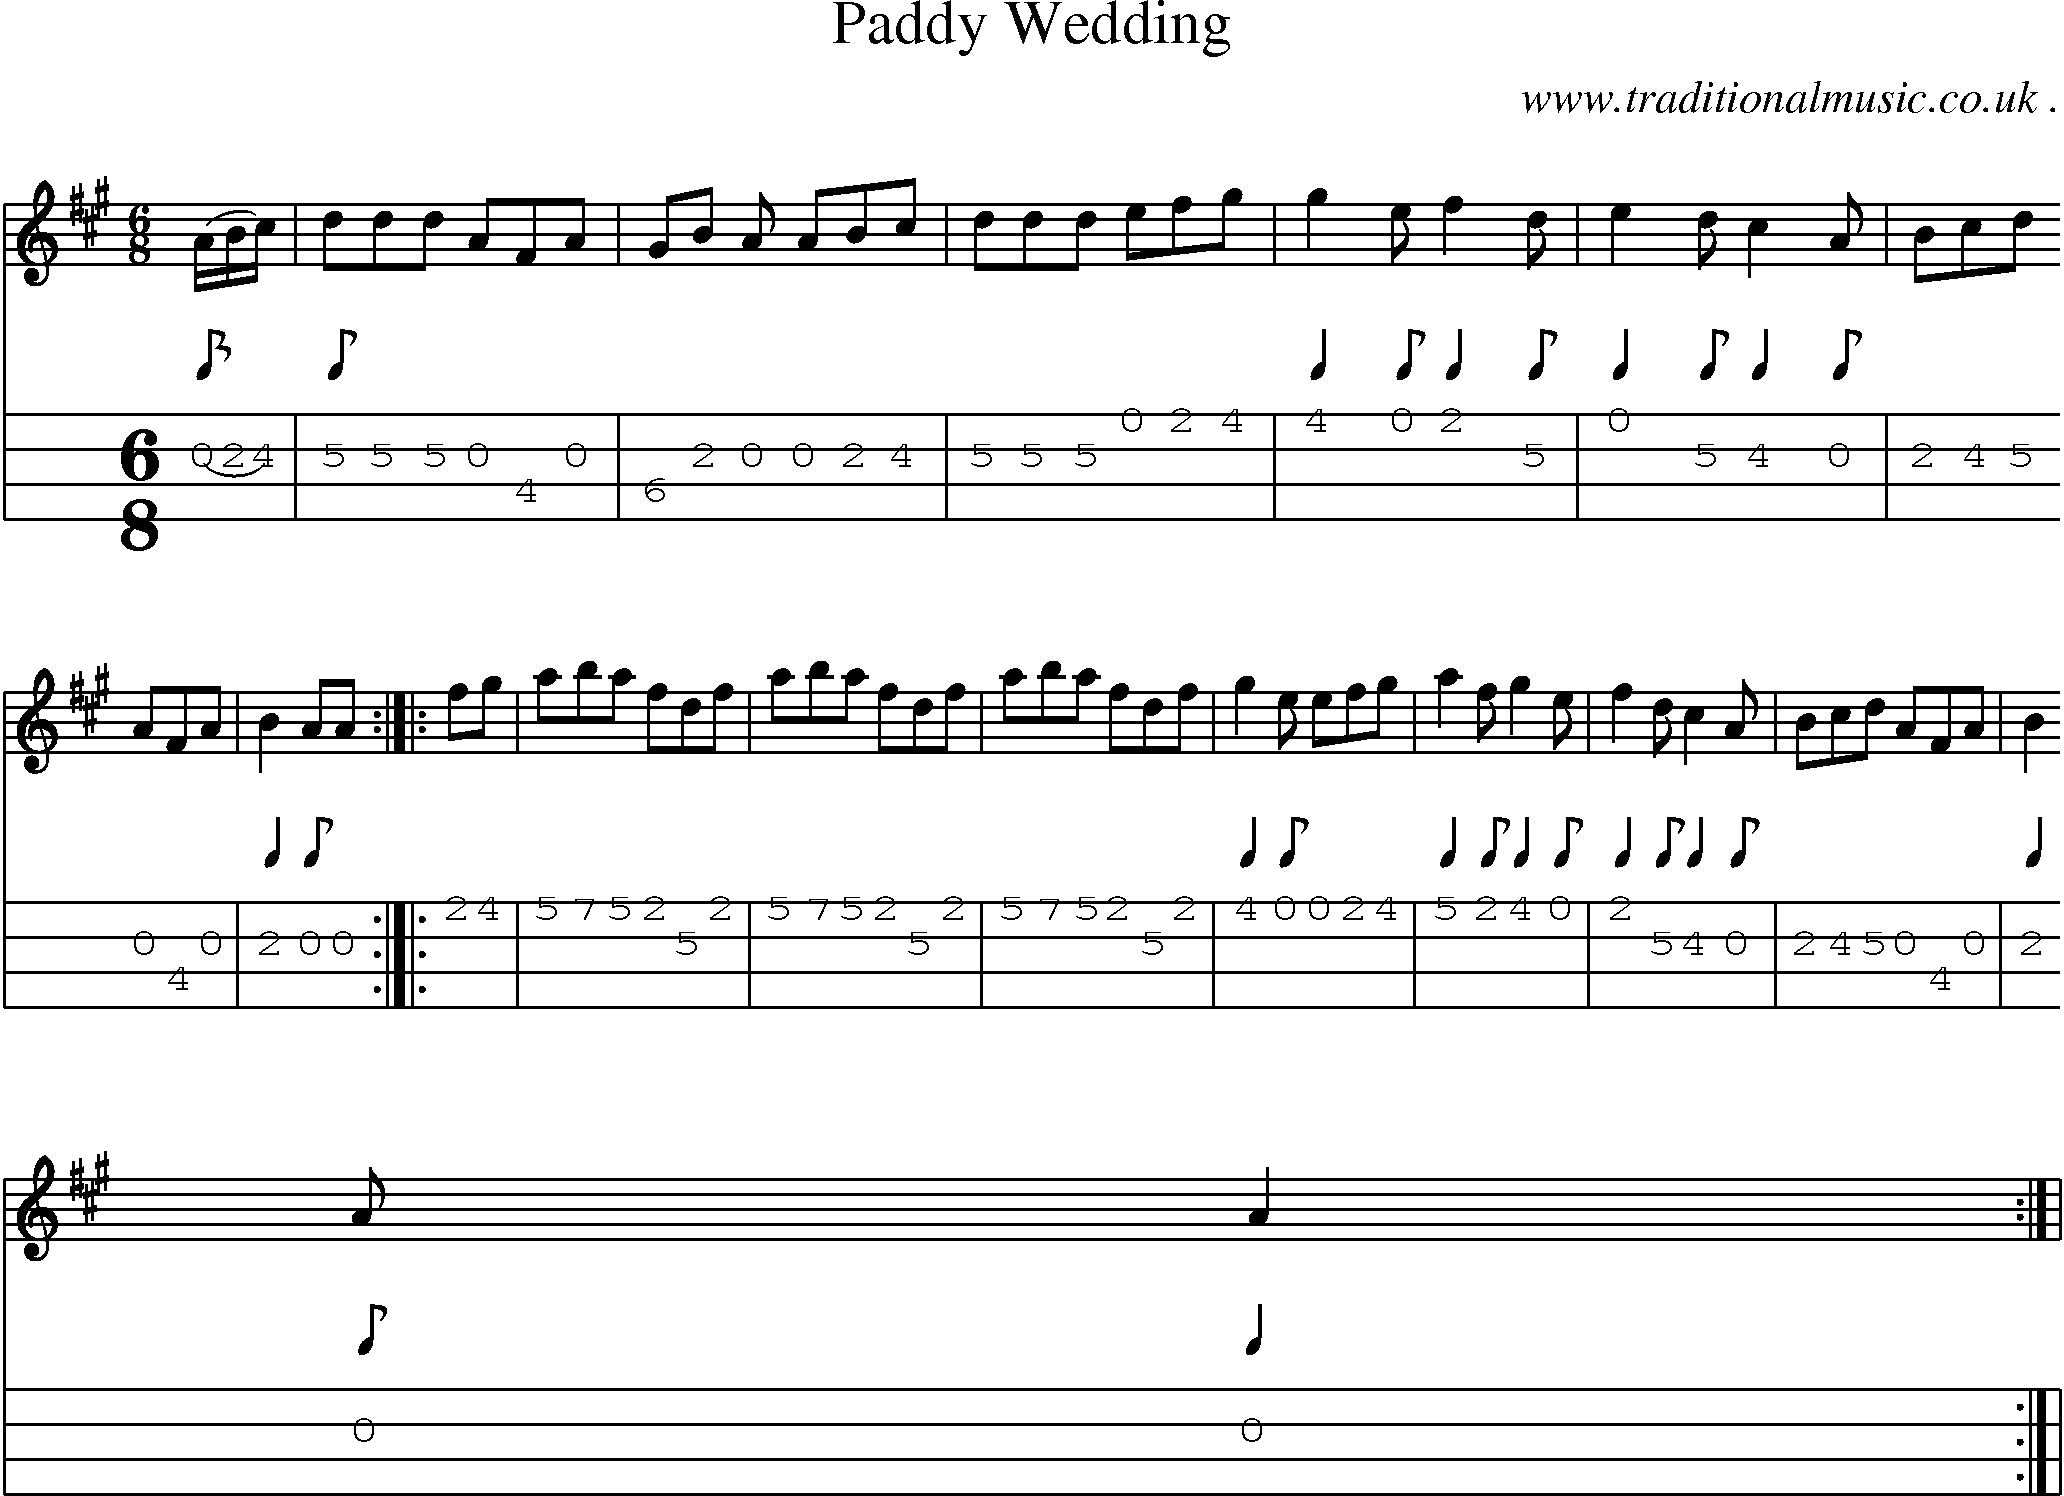 Sheet Music And Mandolin Tabs For Paddy Wedding